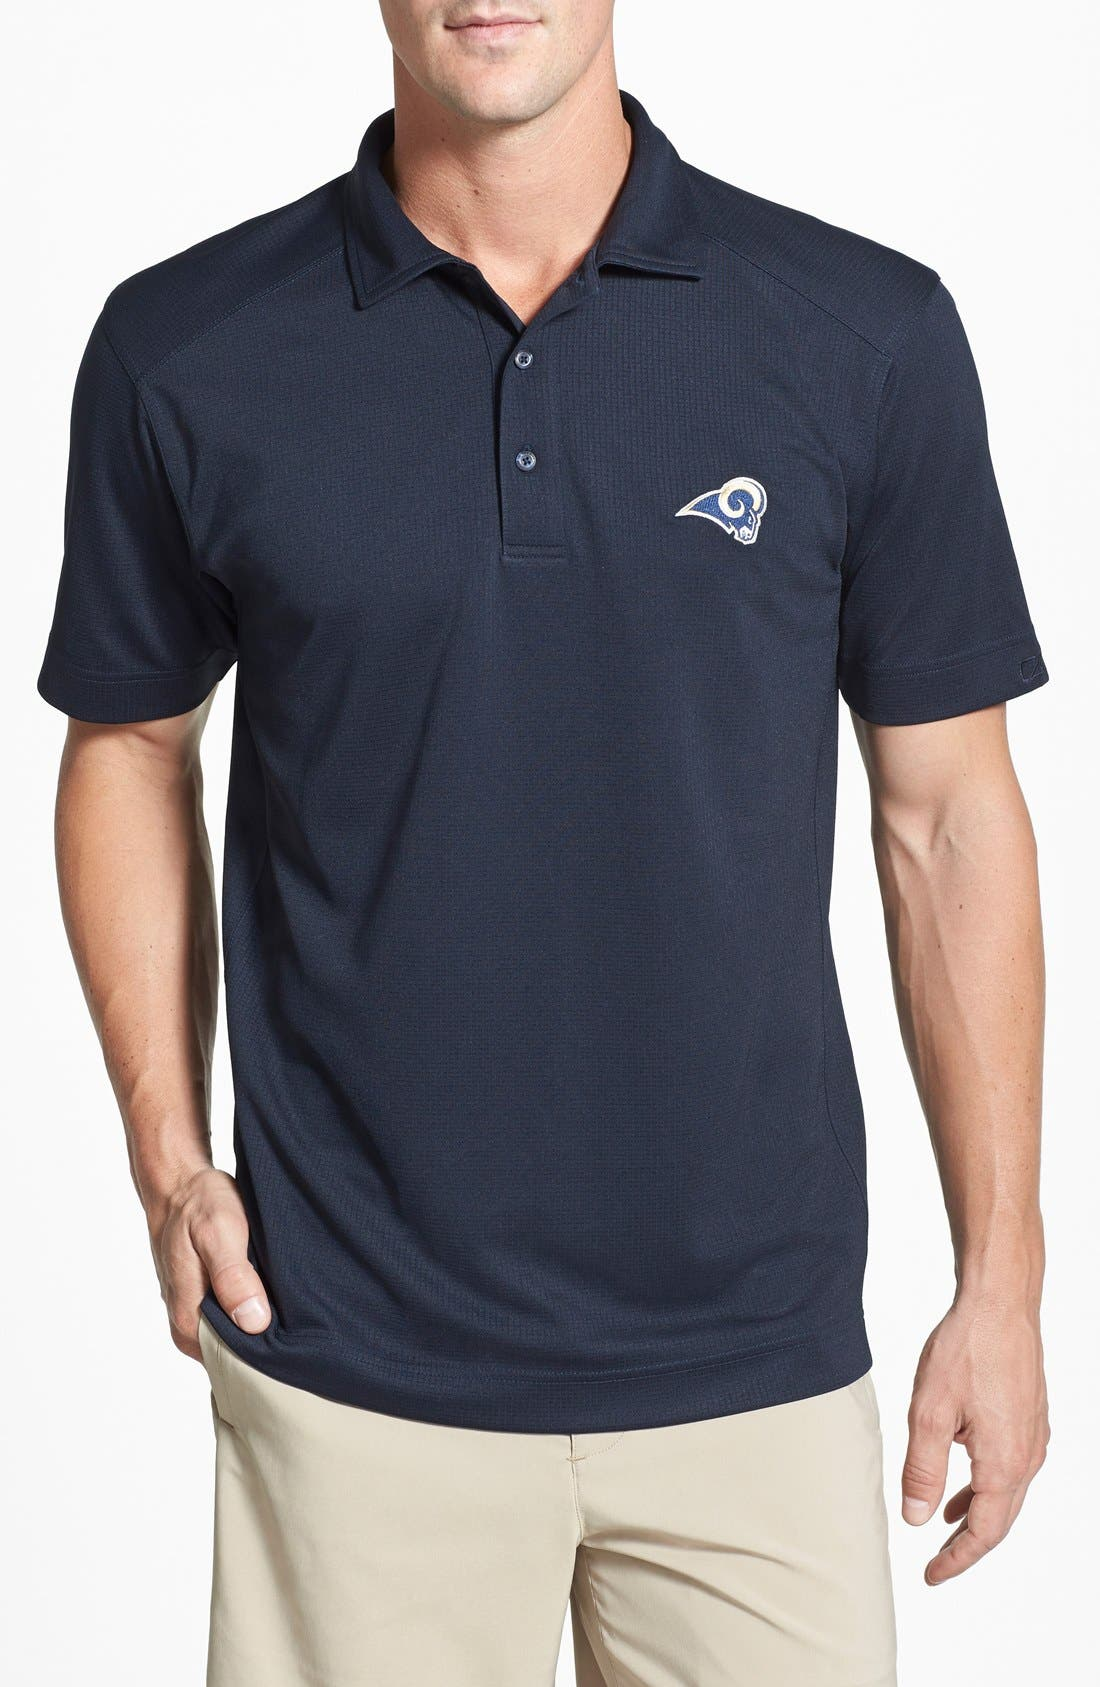 Los Angeles Rams - Genre DryTec Moisture Wicking Polo,                         Main,                         color, Navy Blue